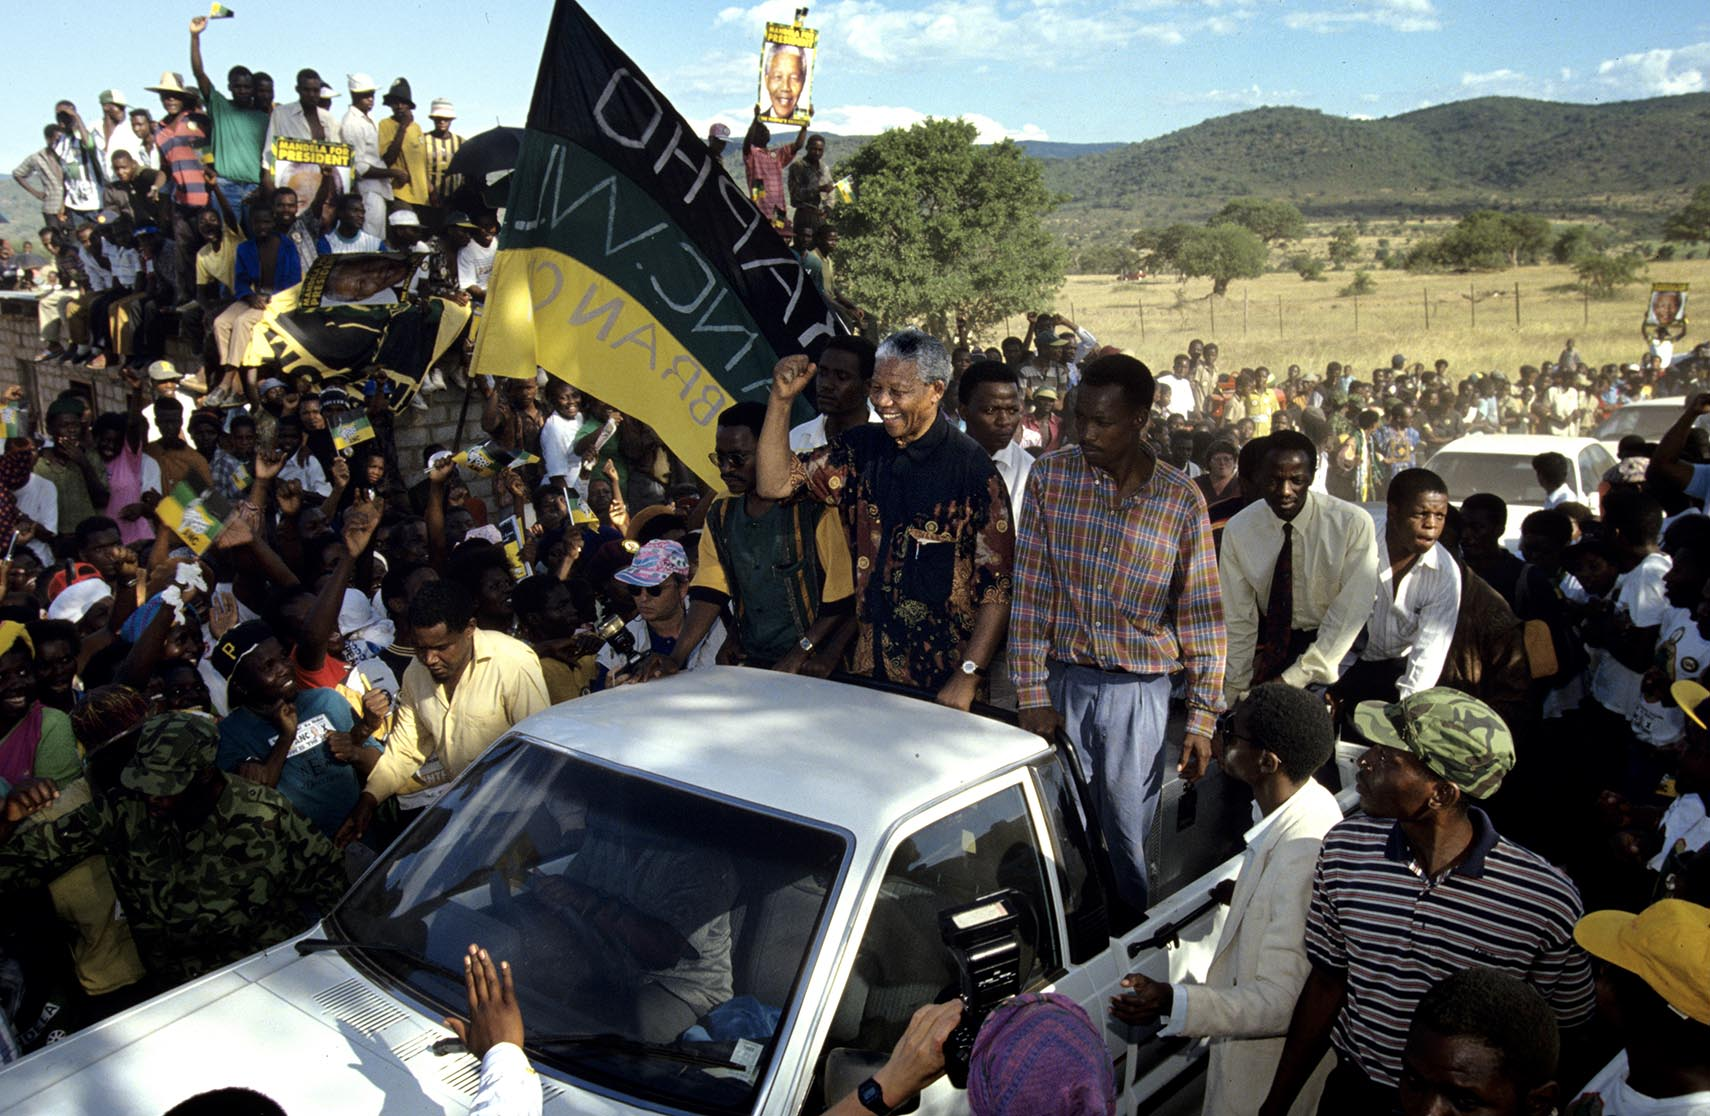 Nelson Mandela greets supports at a campaign stop. After more then 27 years in jail as an anti-apartheid activist,   Nelson Mandela lead a 1994 campaign for President as a member of the African National Congress (ANC),  in the first free elections in South Africa in 1994.  Mandela has received more than 250 awards over four decades, including the 1993 Nobel Peace Prize.